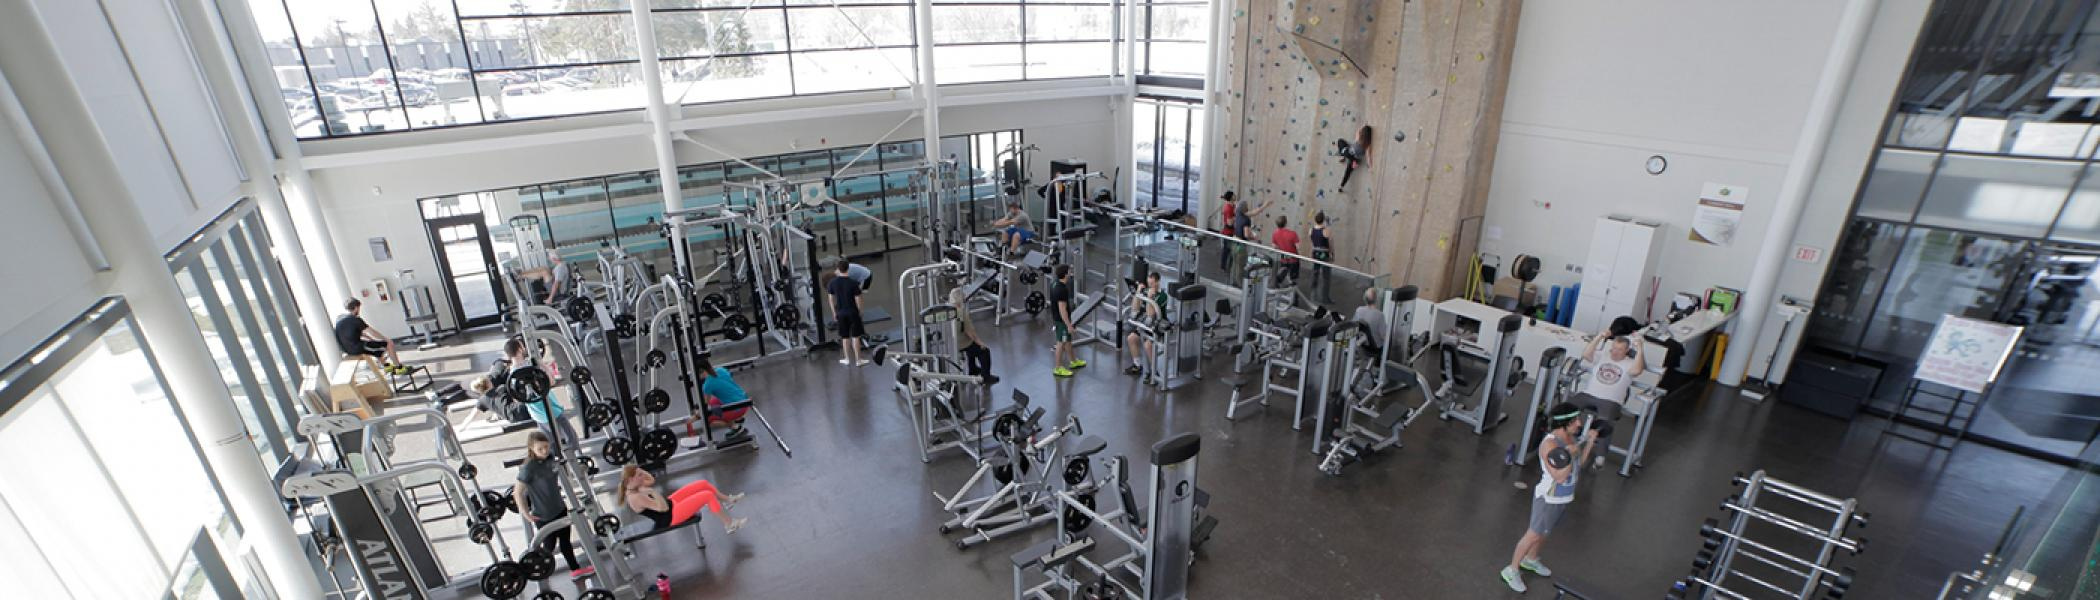 People using the Sports Centre